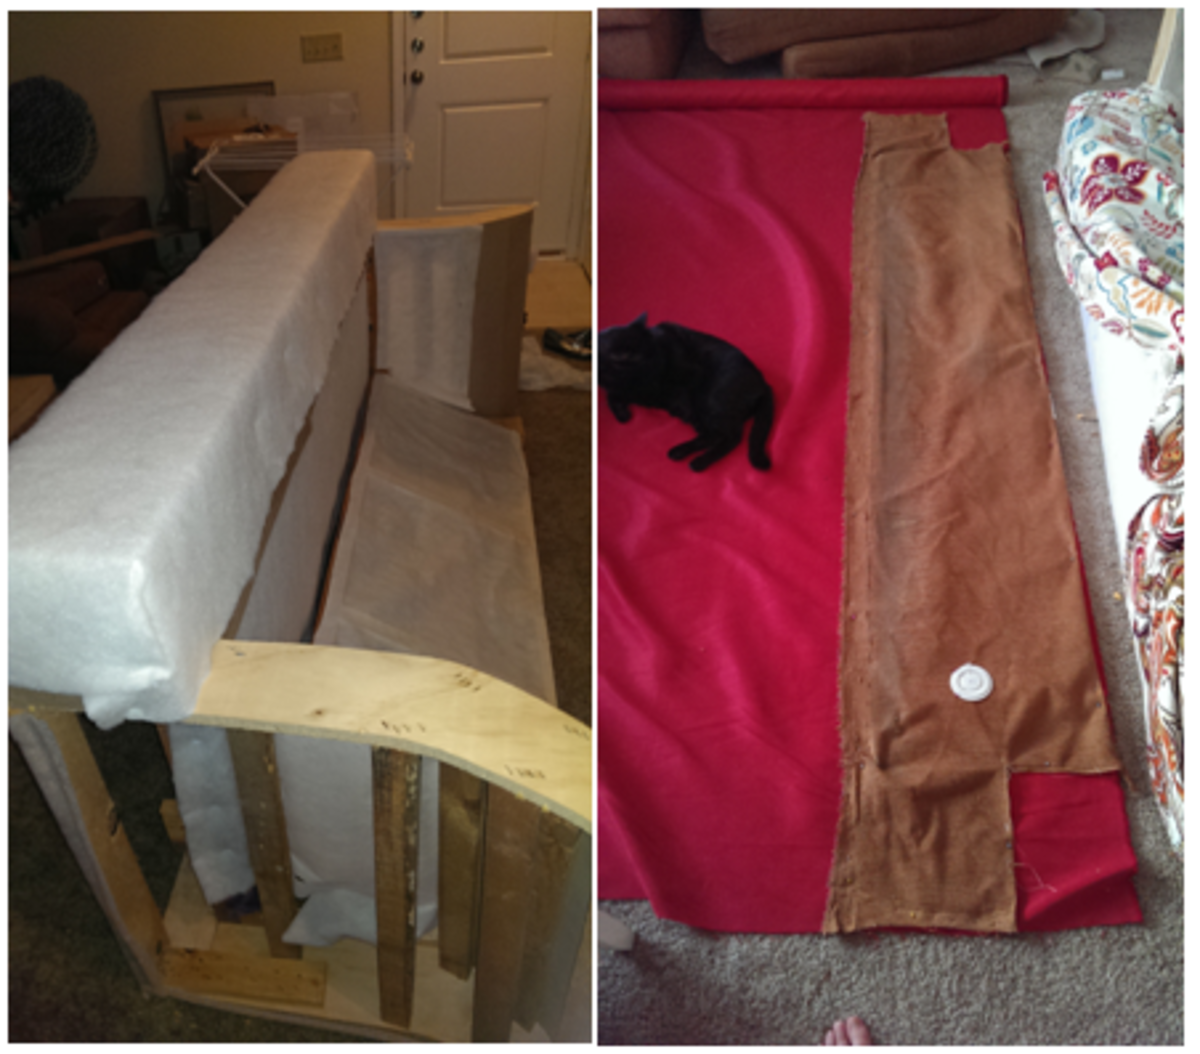 Putting on the batting for the base of the couch, and Zeus helping me re-measure the fabric from the bottom of the couch so I got the right shape.